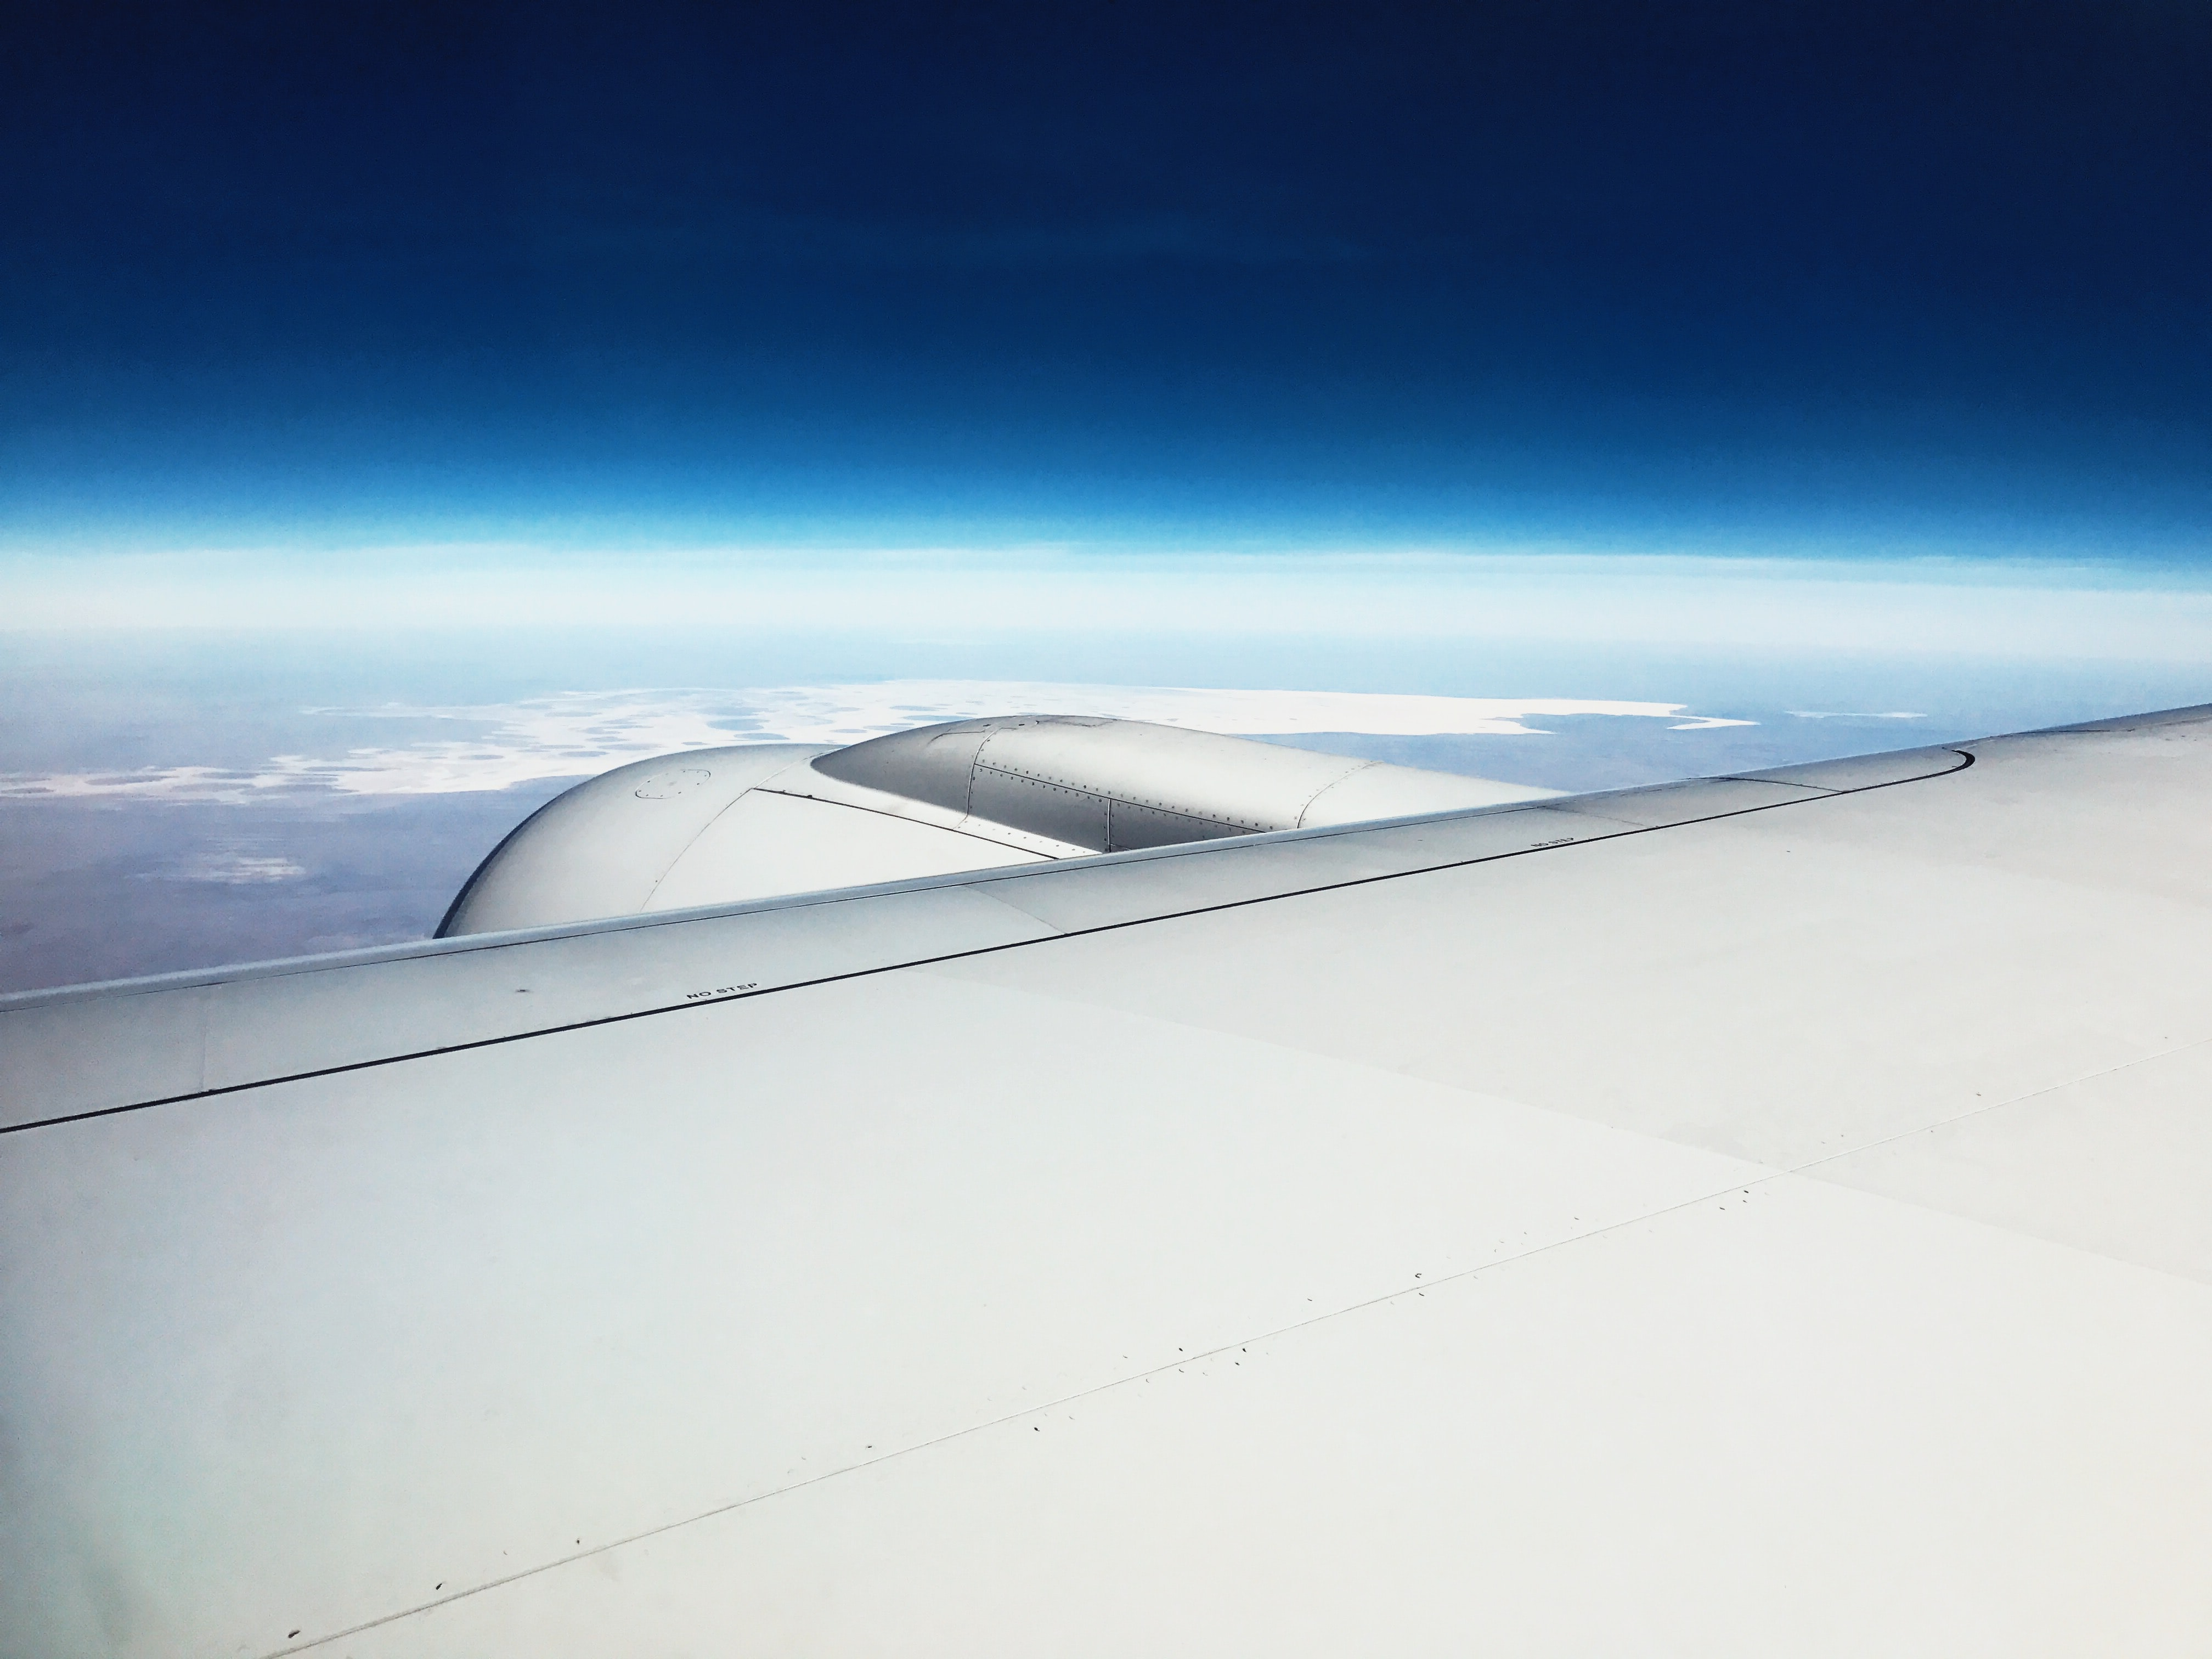 airplane wing under blue sky